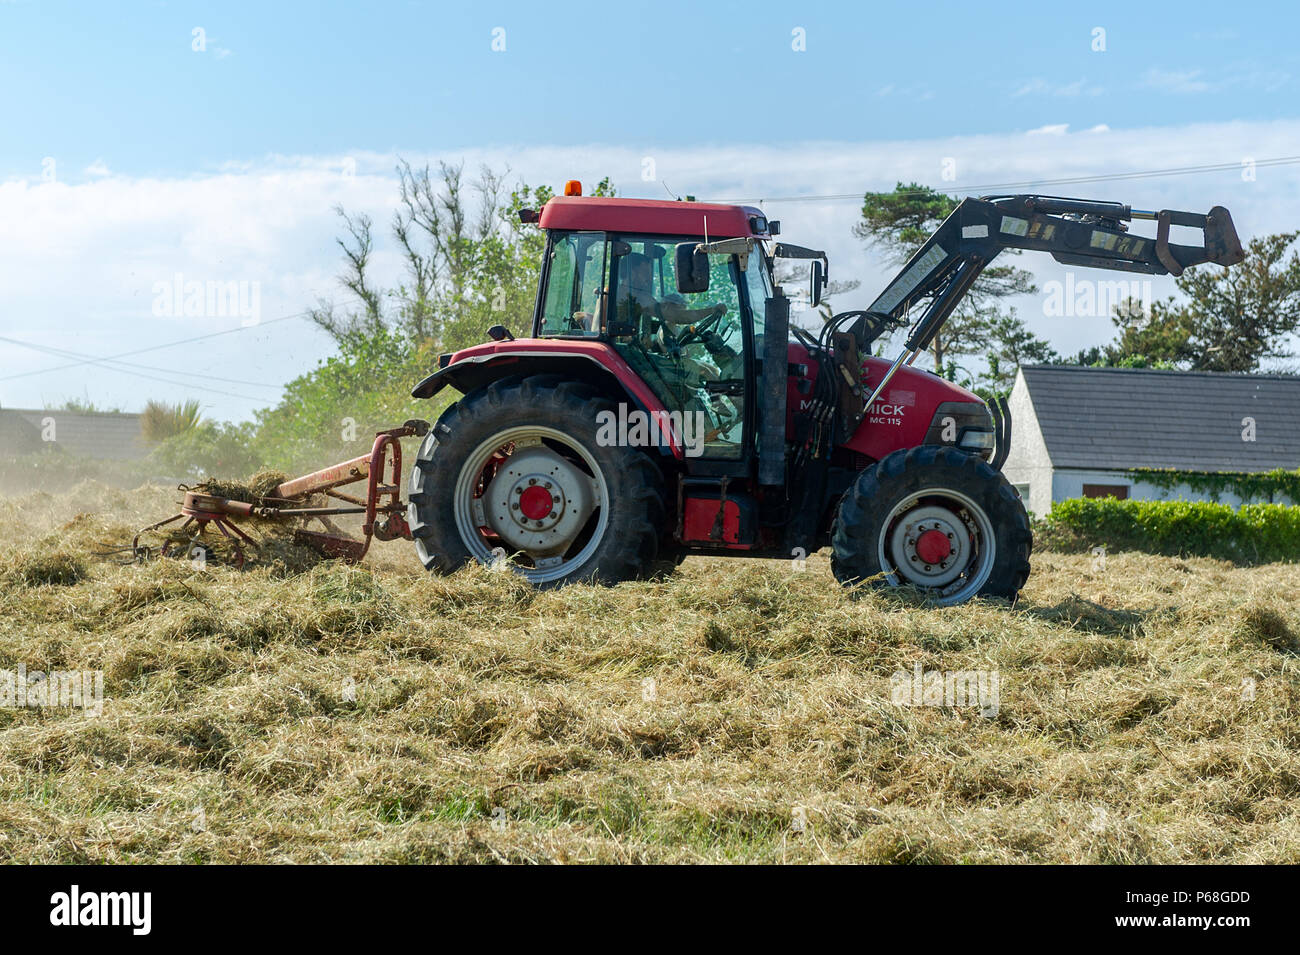 schull-west-cork-ireland-29th-june-2018-a-farmer-works-on-silage-in-his-field-making-the-most-of-the-dry-weather-whilst-it-lasts-temperatures-will-remain-in-the-mid-20s-celsius-for-the-rest-of-the-weekend-but-rain-is-forecast-from-monday-onwards-credit-andy-gibsonalamy-live-news-P68GDD.jpg